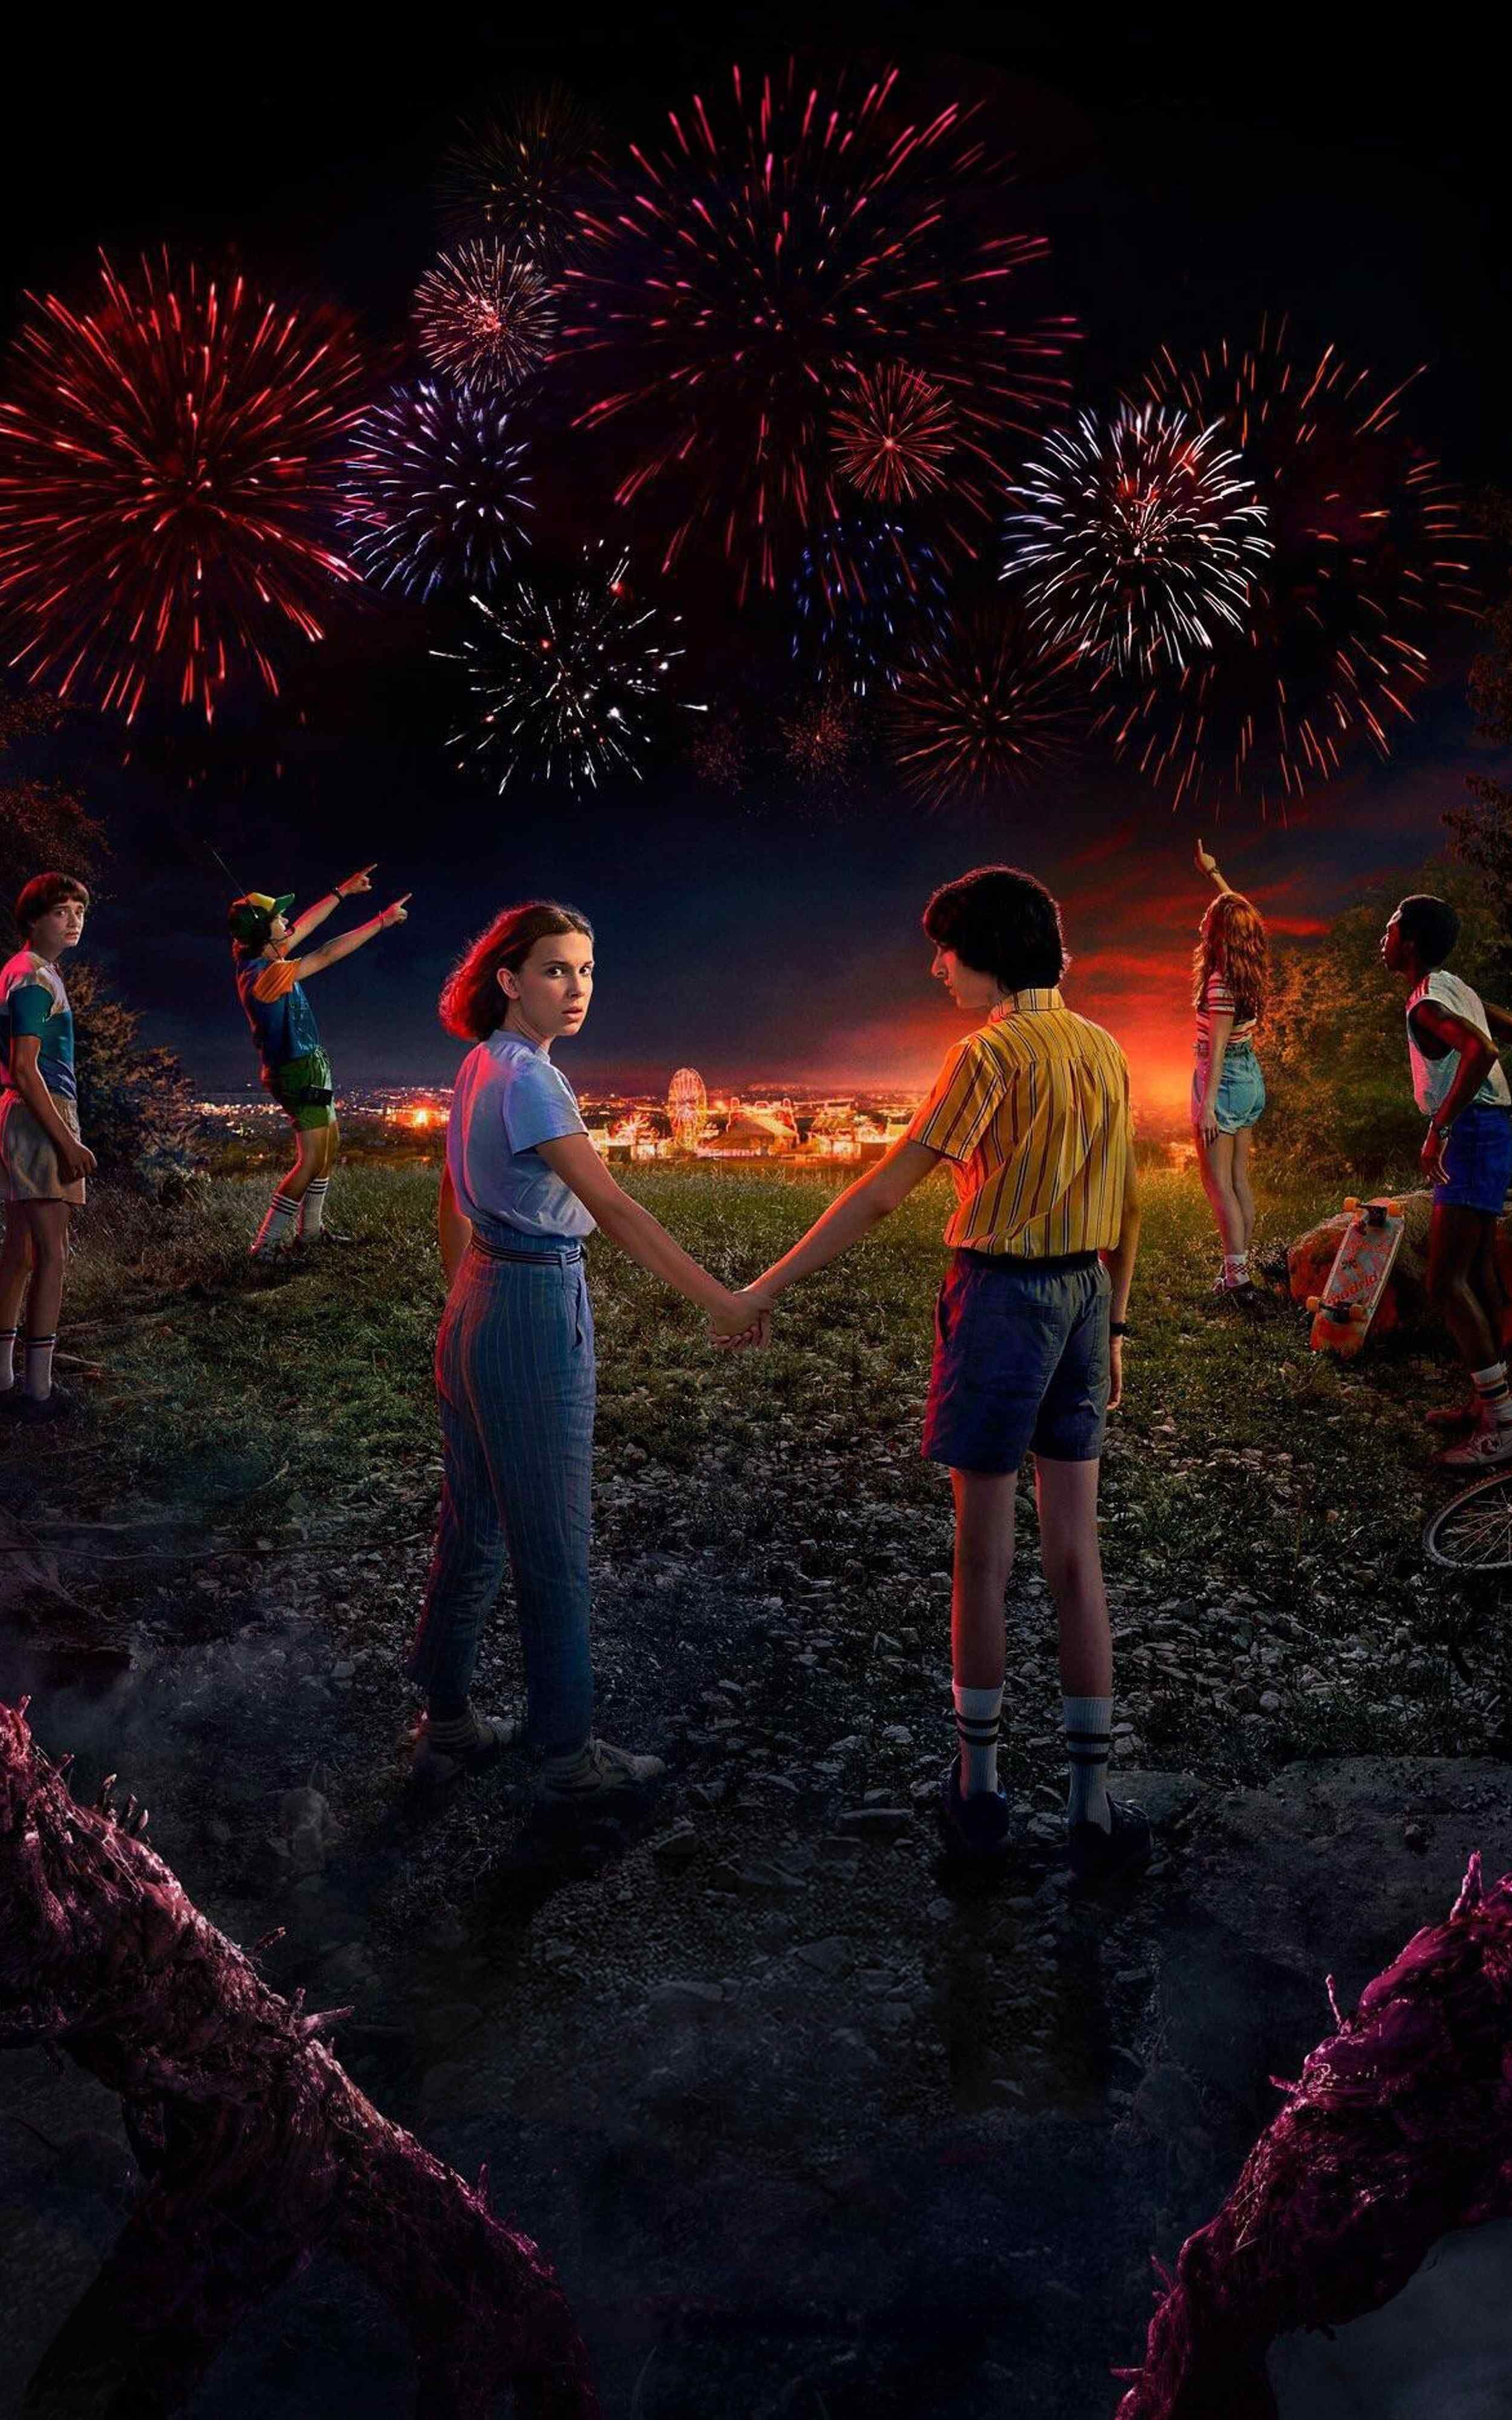 Stranger Things Hd Wallpaper 1920x1080 Full Hd Hdtv Free Download Con Imagenes Fondos De Pantalla De Peliculas Stranger Things Wallpaper Fondos De Peliculas